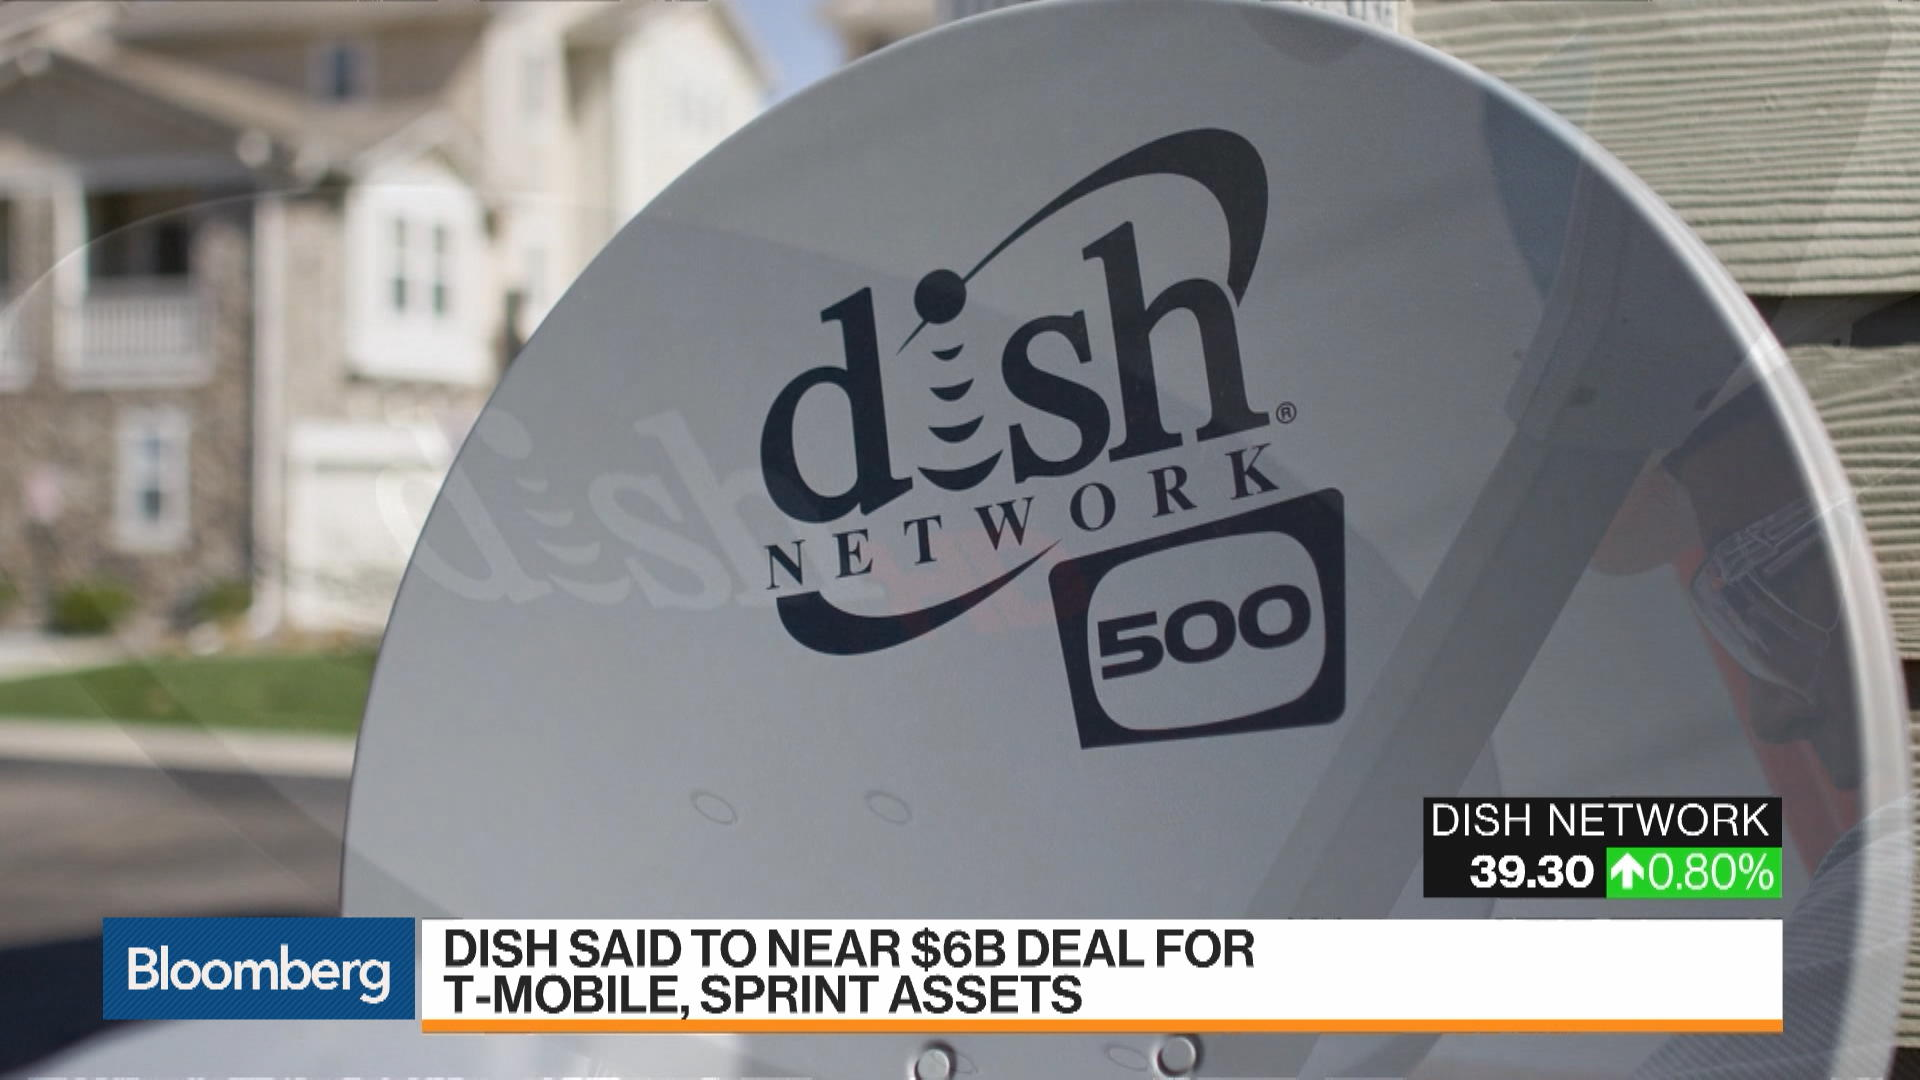 Why Dish Would Want to Buy Sprint, T-Mobile Assets